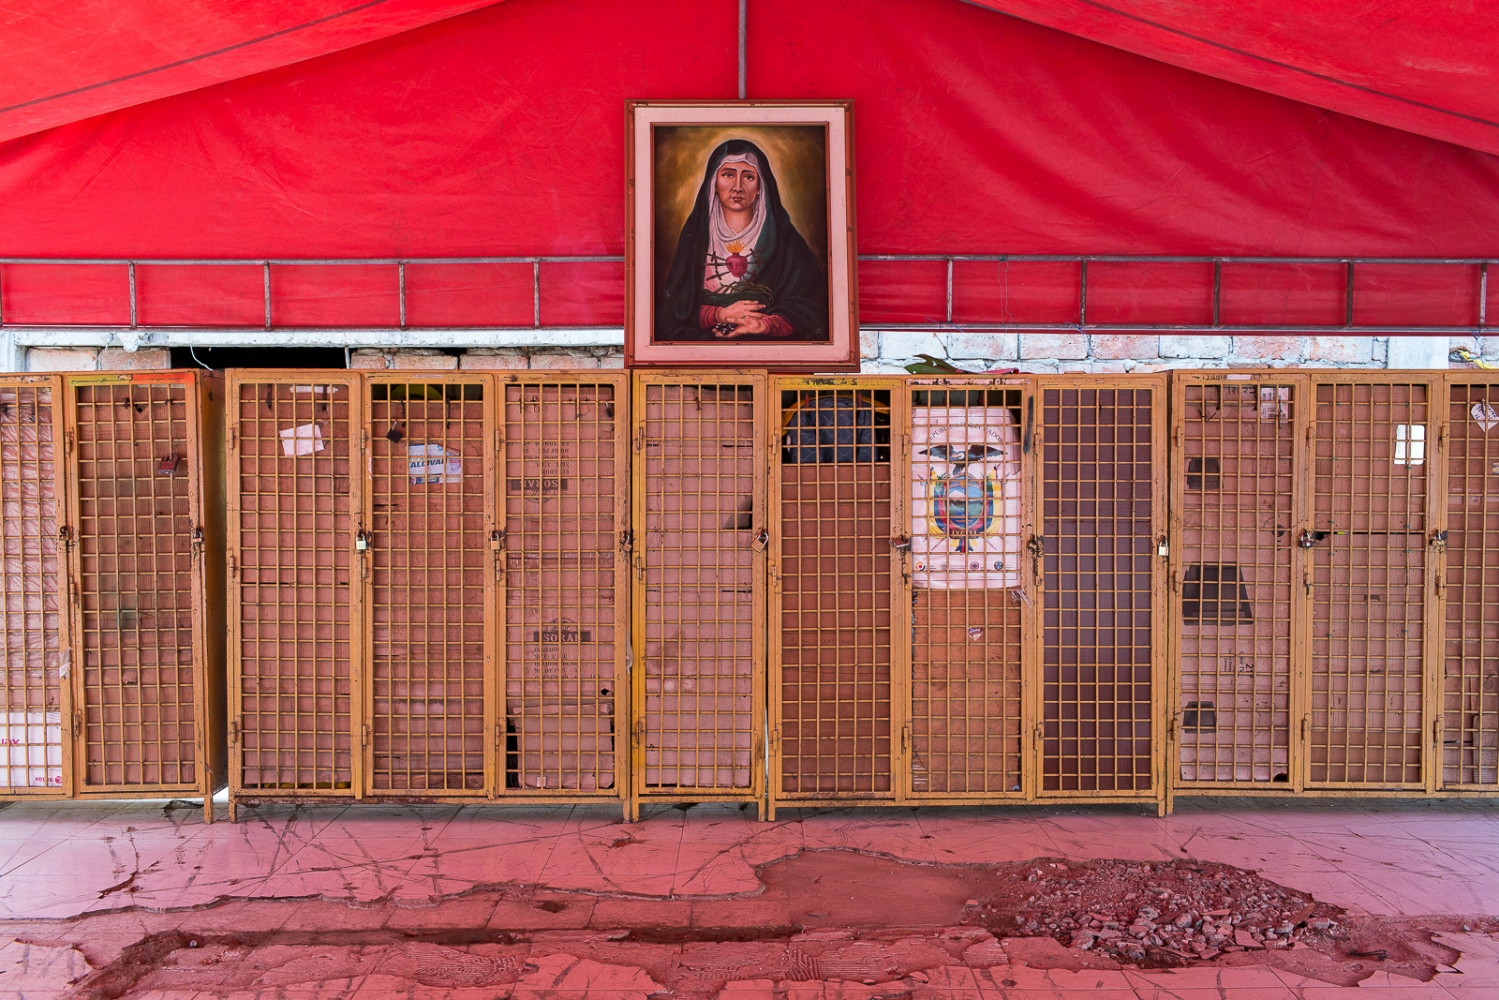 The locker room on the fireman headquarters in Portoviejo, with a portrait of the Lady of the Sorrows. The fireman headquarters collapsed during the 16th April earthquake and they now operate under tents until a new headquarters is build.